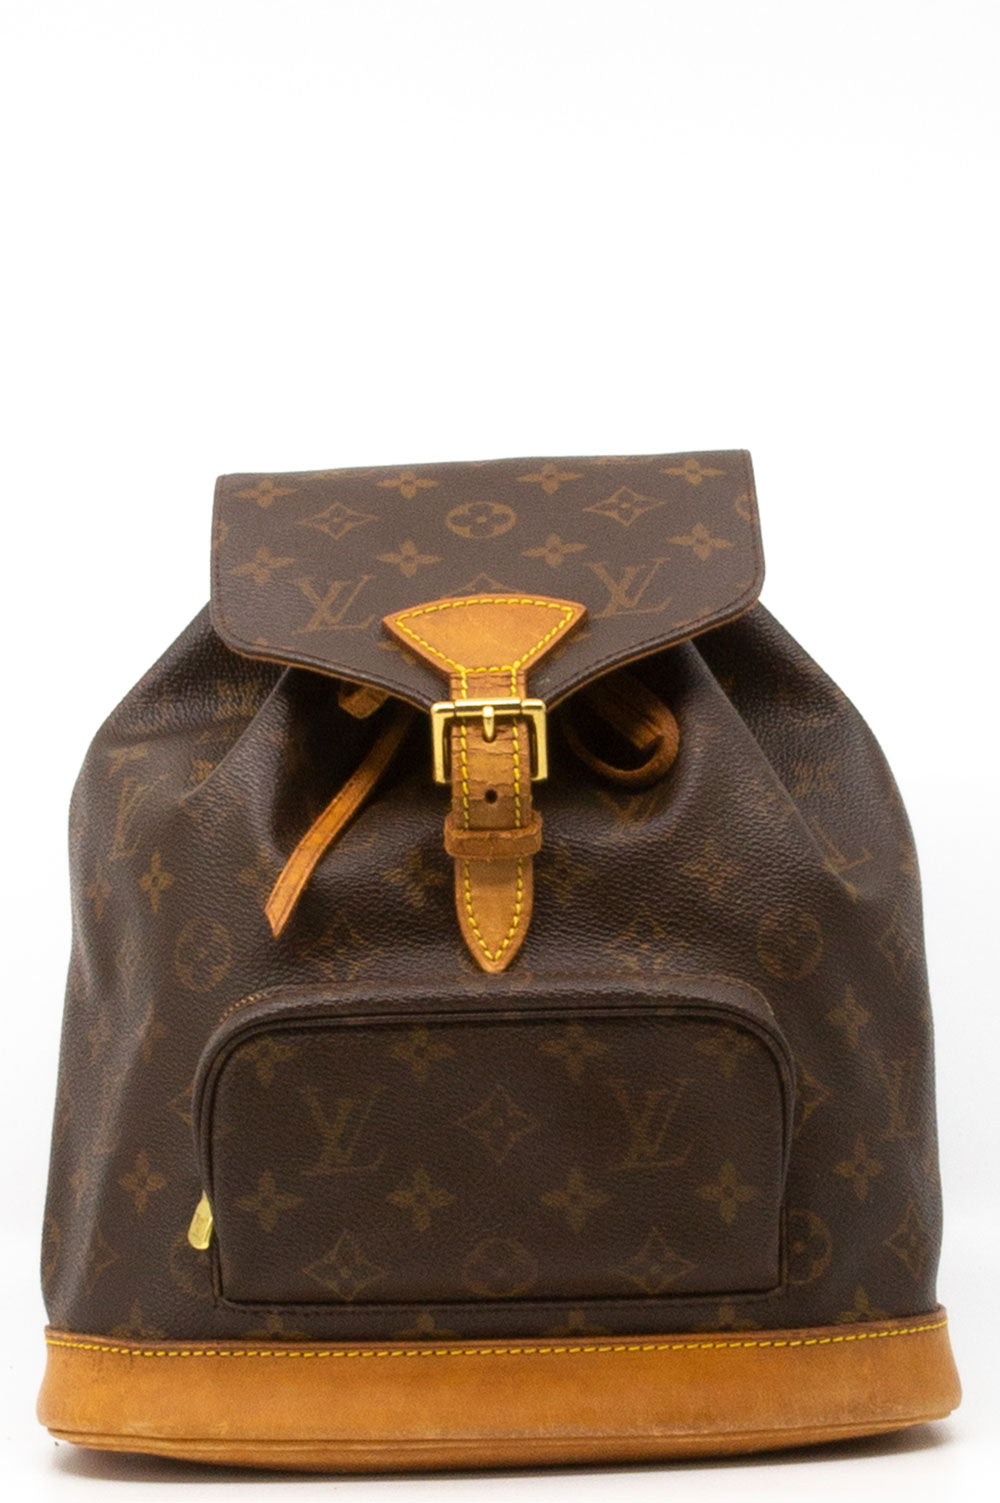 Louis Vuitton Montsouris Rucksack in braunem Louis Vuitton Monogram.